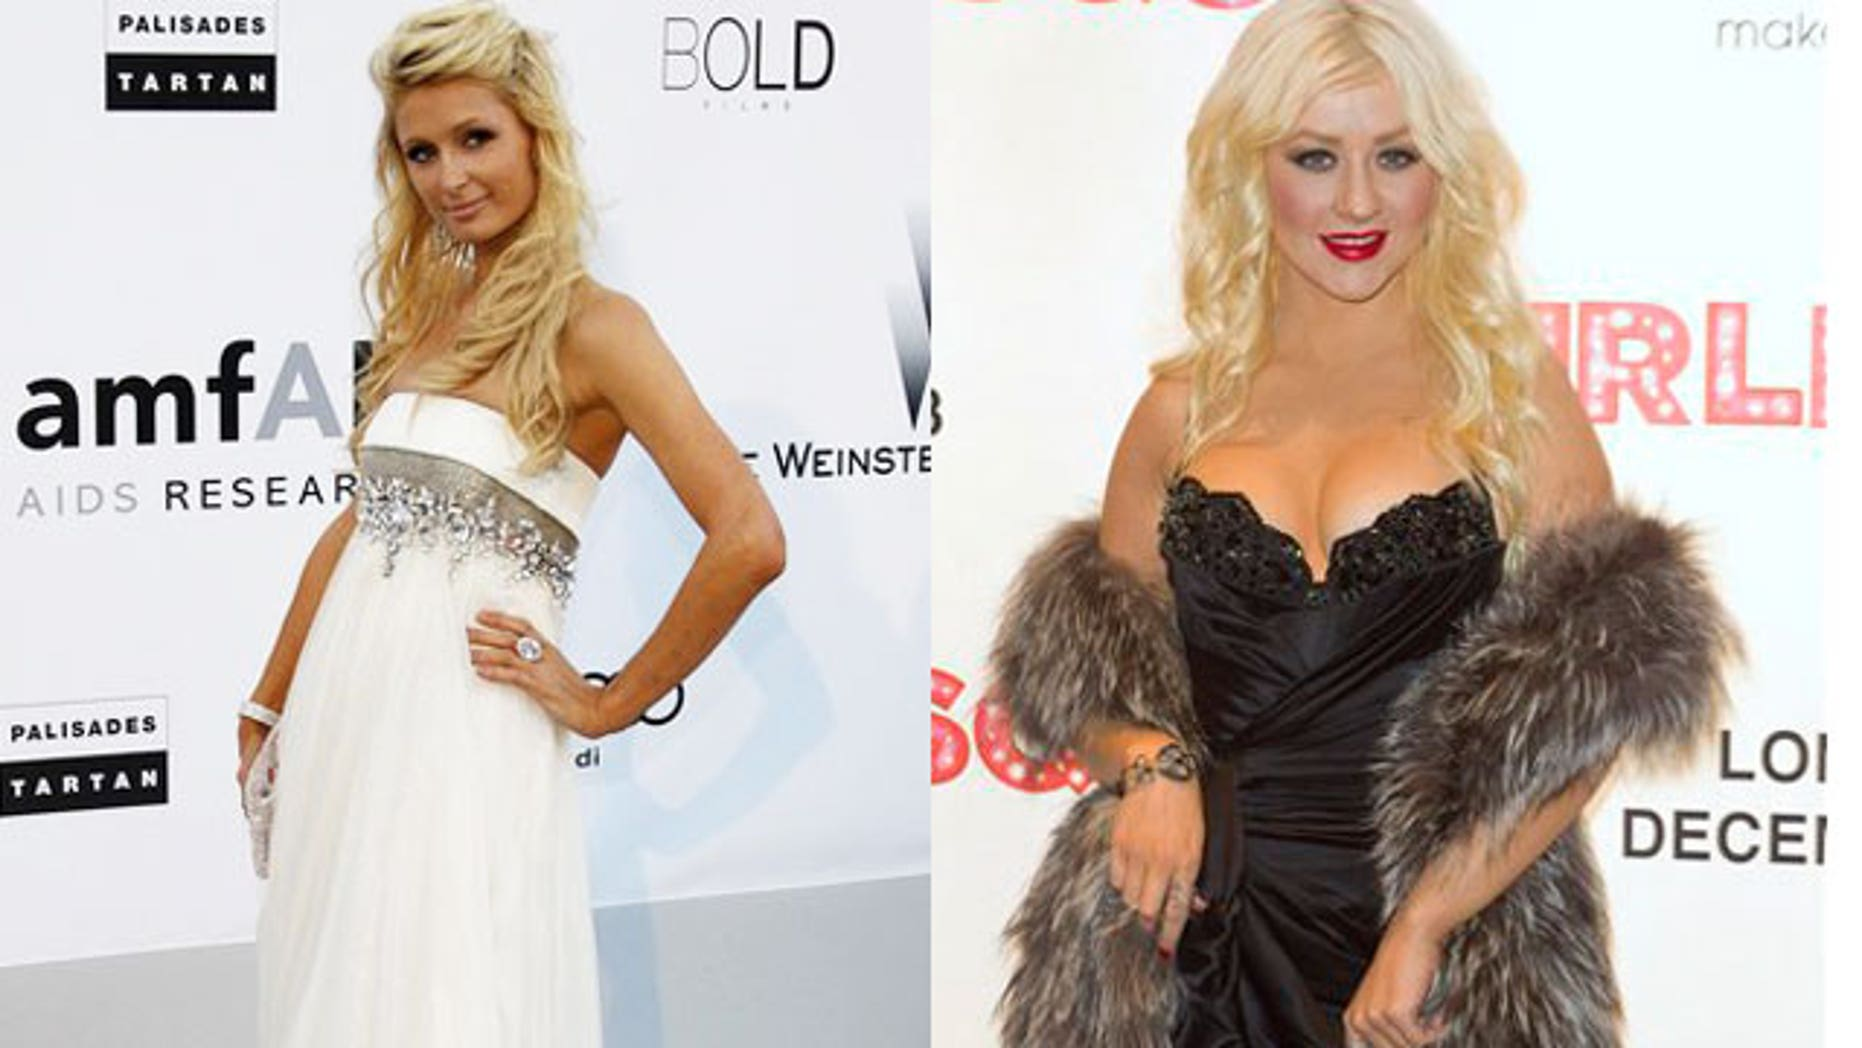 Paris Hilton (L) and Christina Aguilera are both subjects in Strauss' new book.